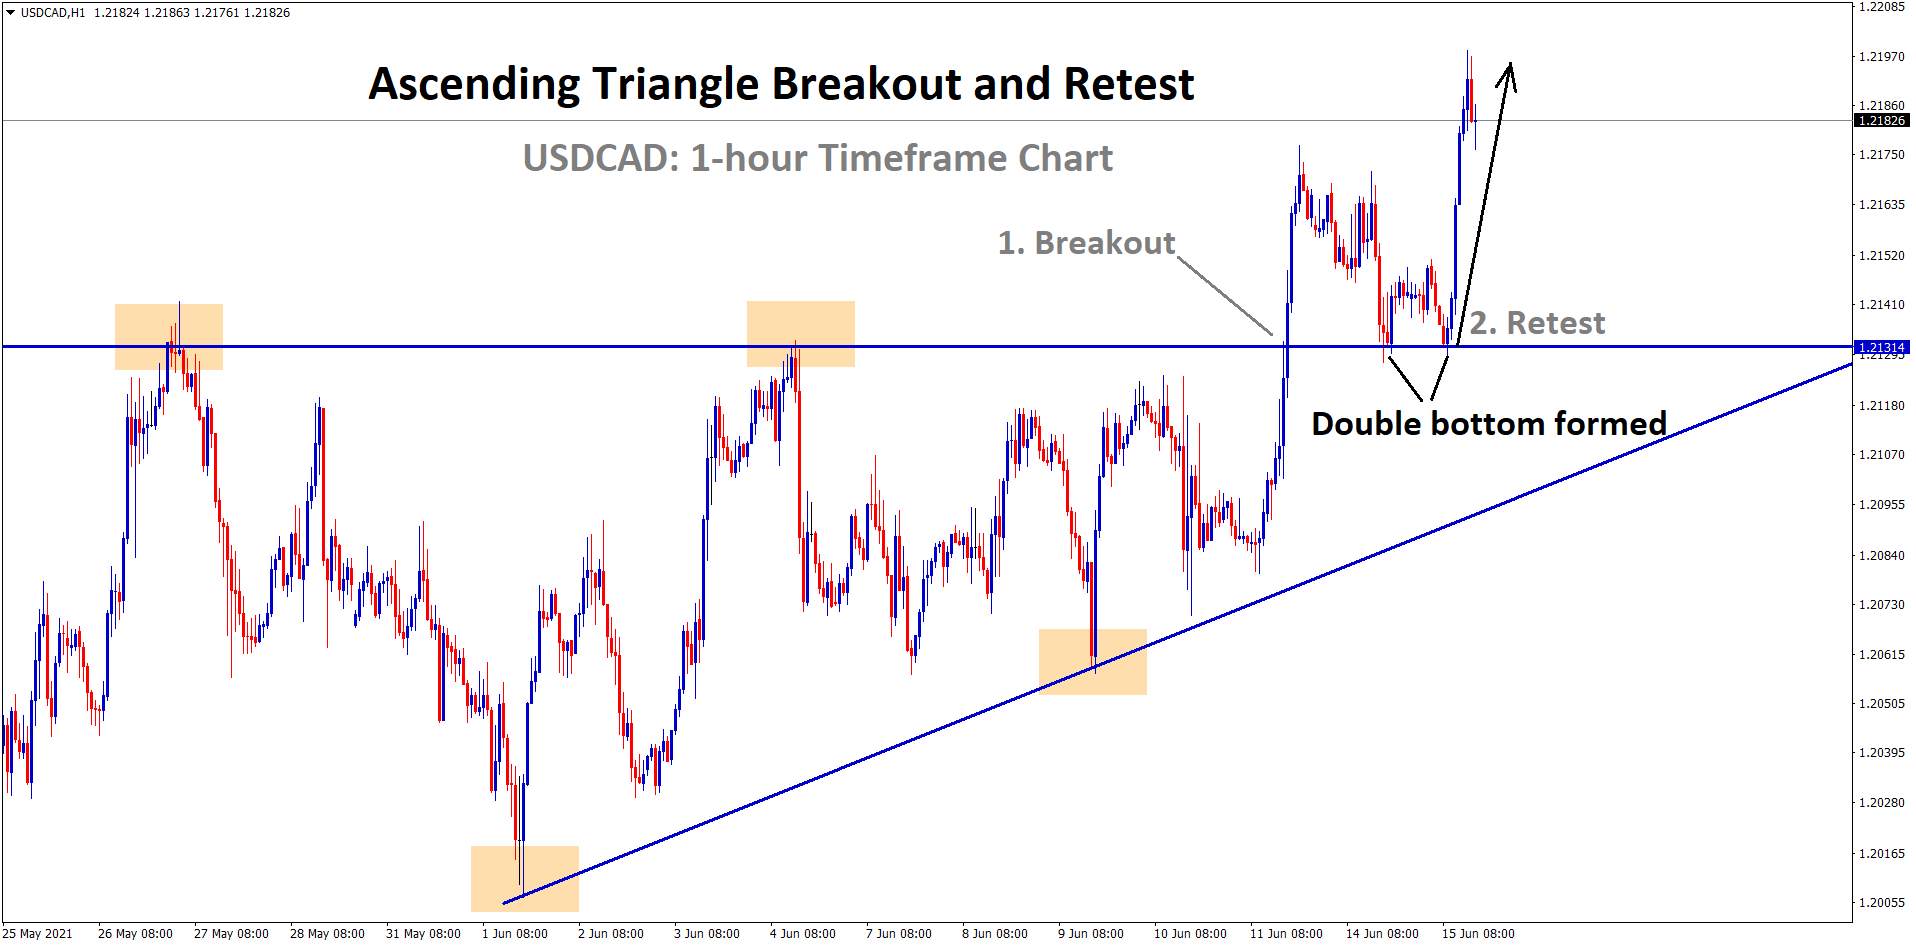 USDCAD bounced back after retesting the broken level of an Ascending Triangle